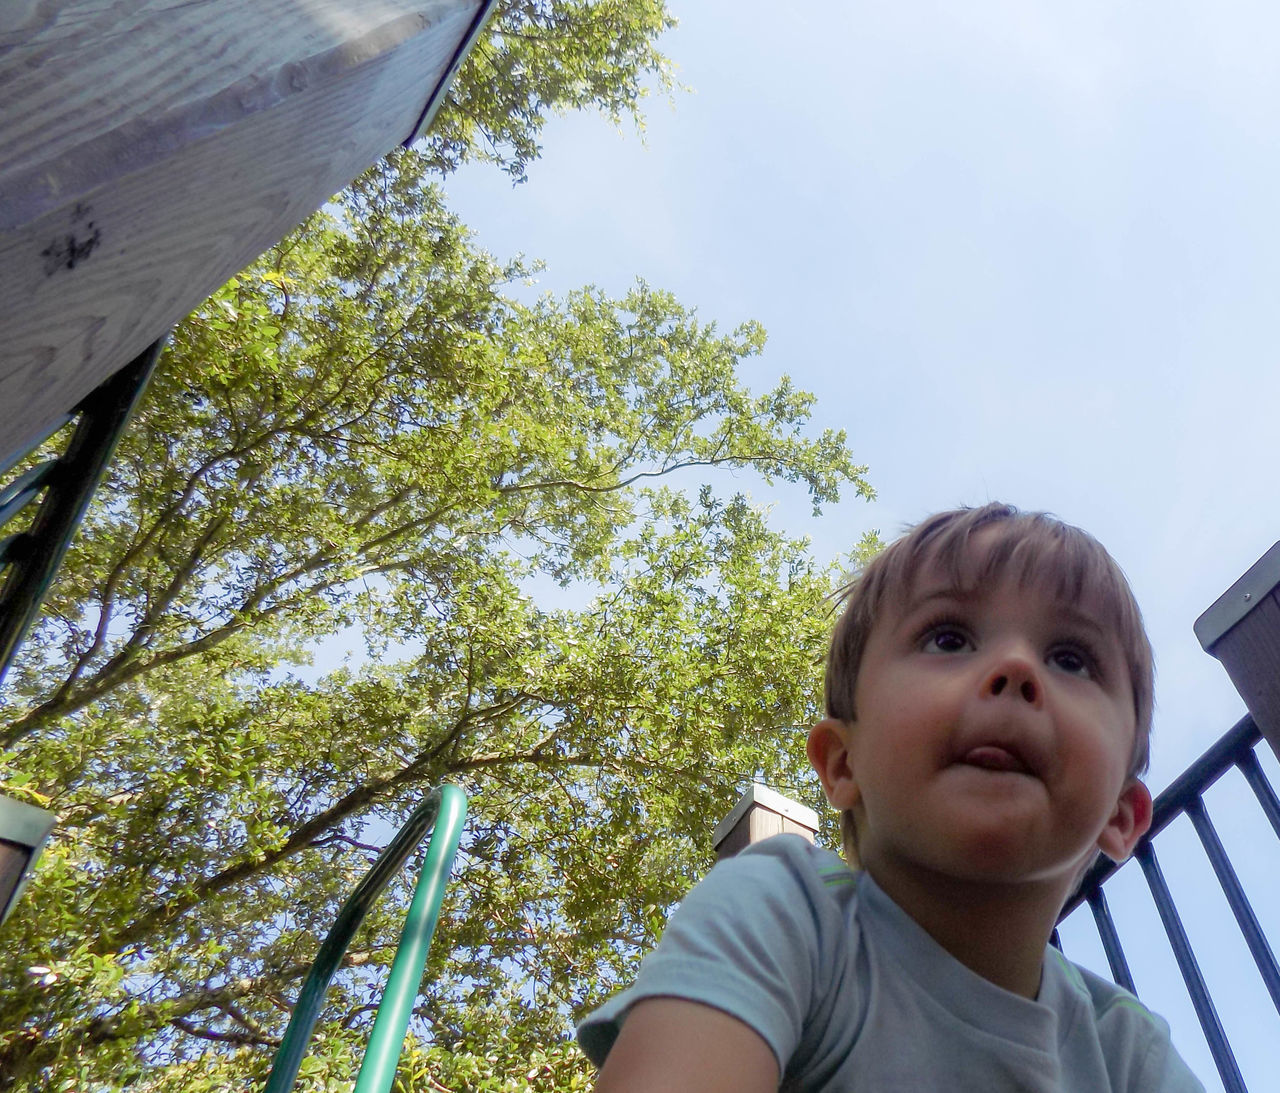 childhood, low angle view, tree, one person, child, looking at camera, boys, growth, portrait, real people, day, outdoors, people